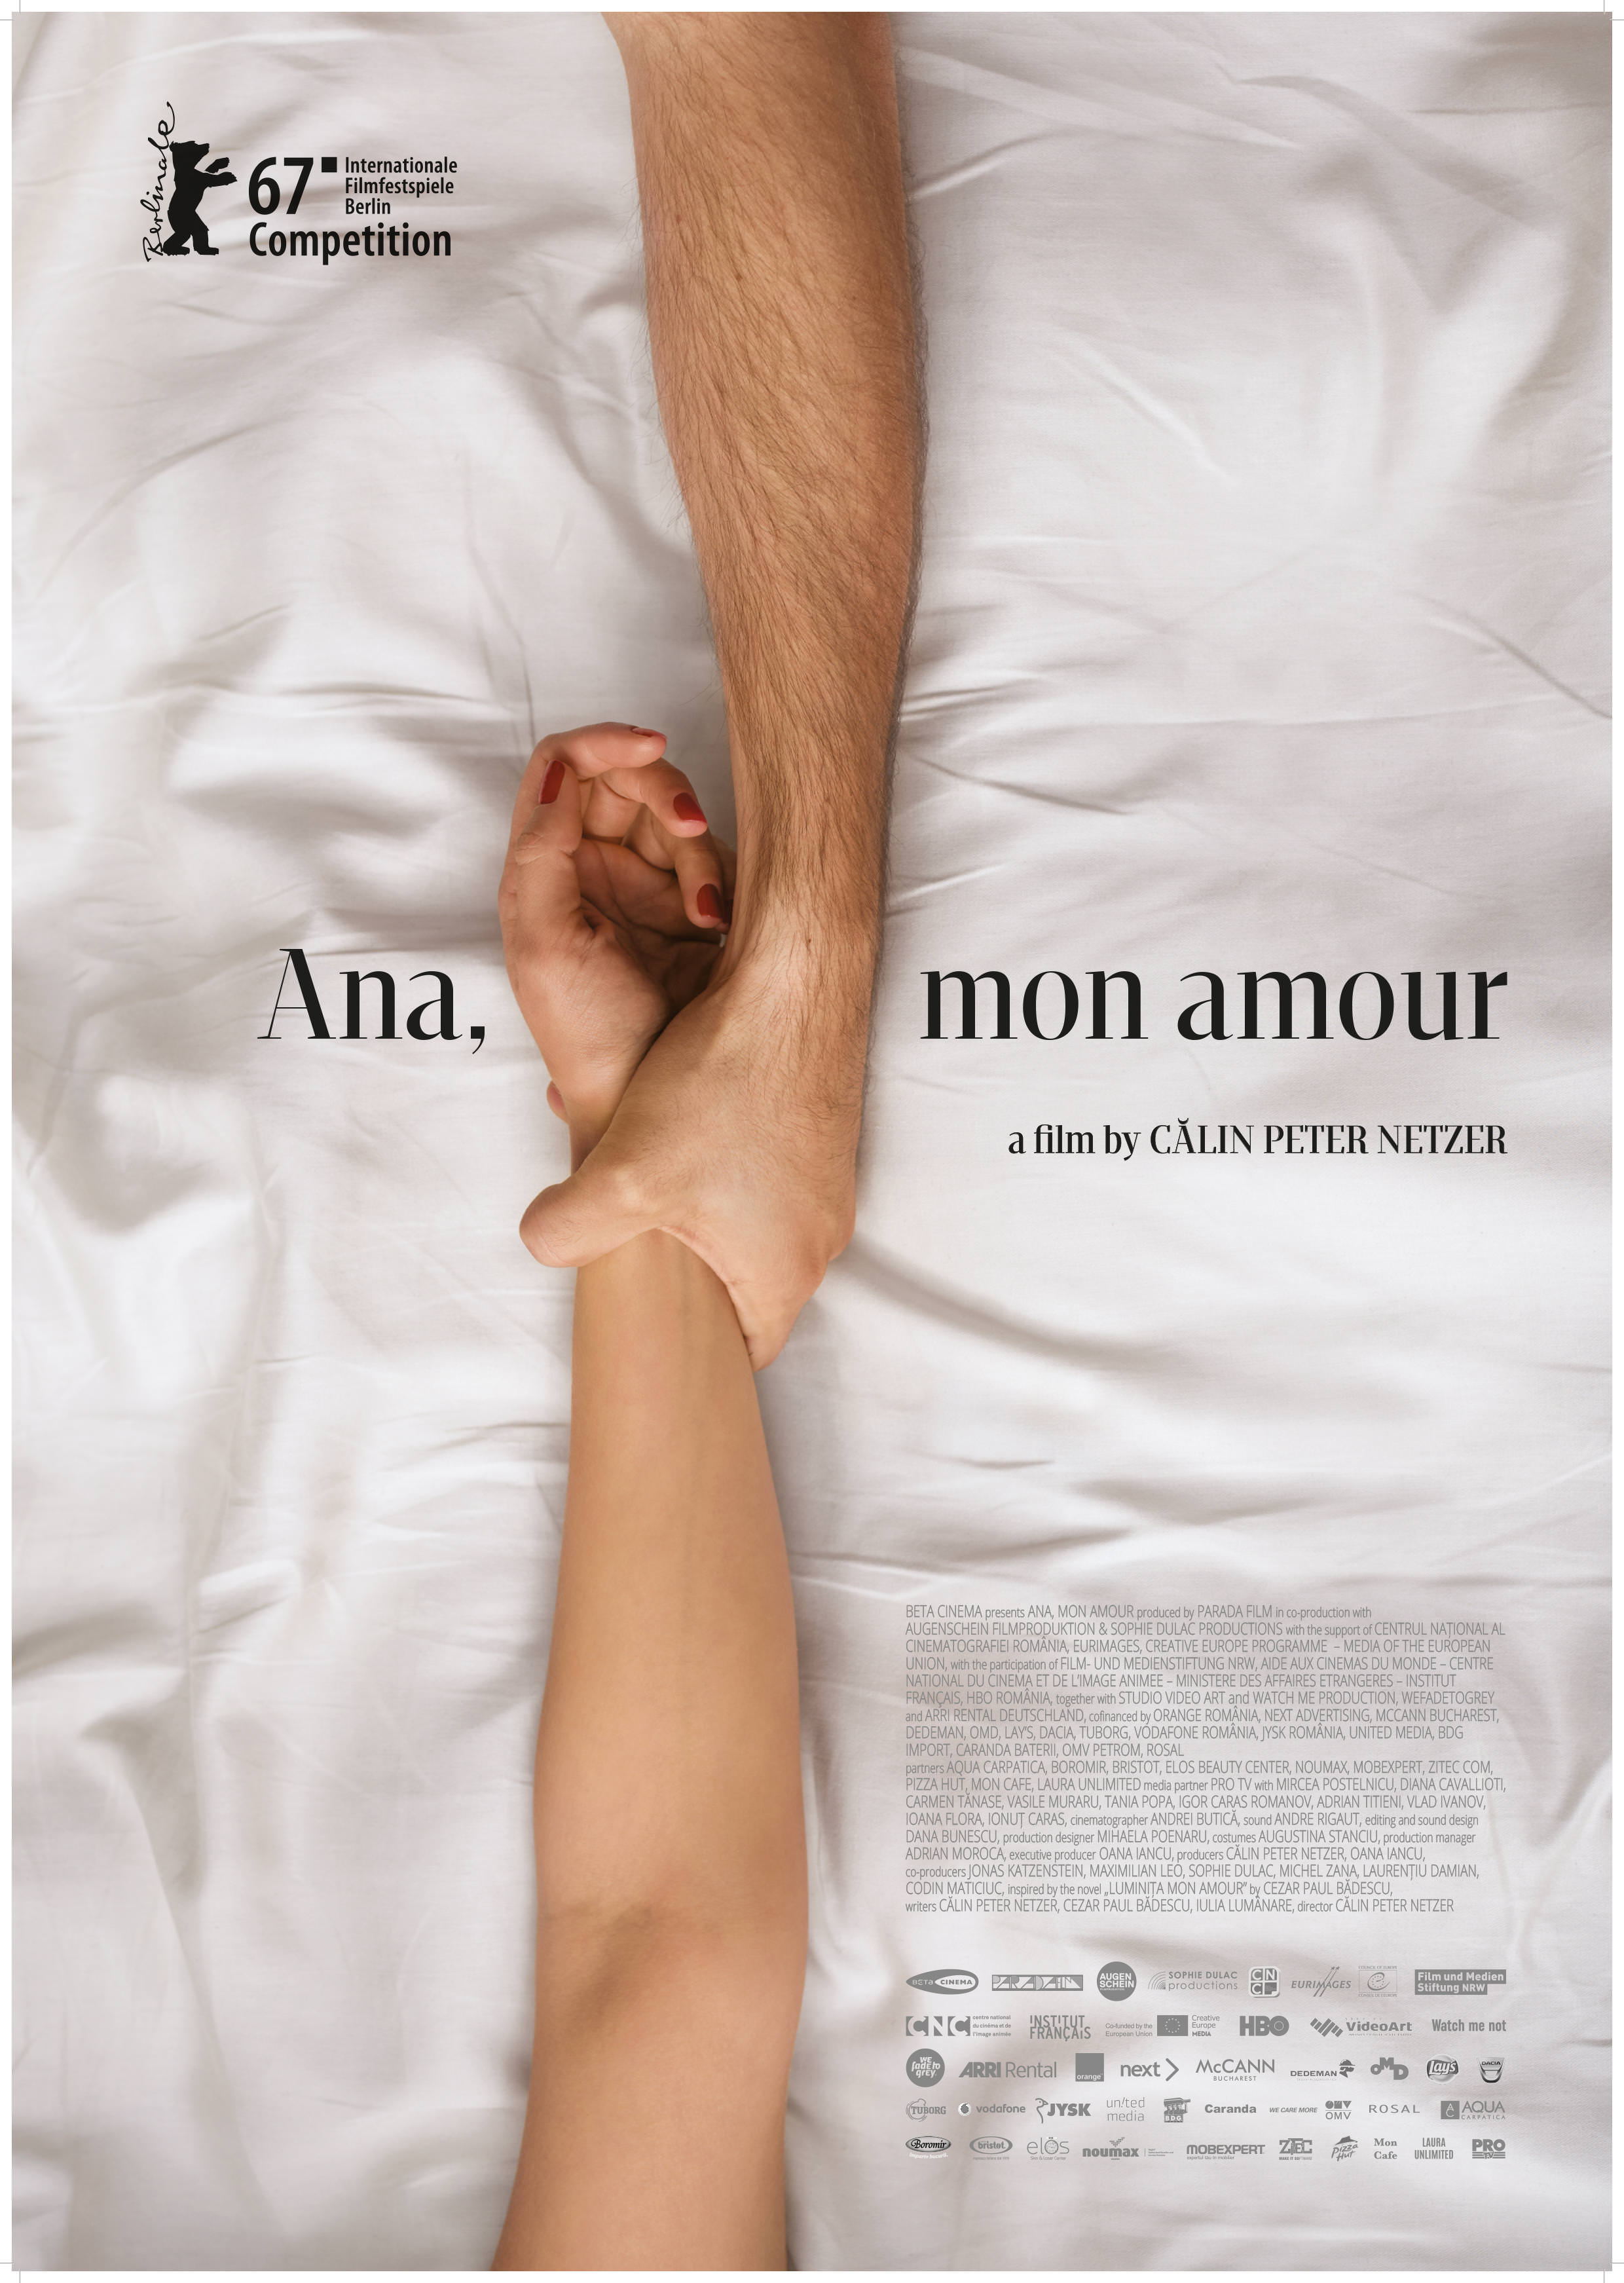 anamonamour-poster-a1.14c7ecd3bbbd67dca405132acb878cc3